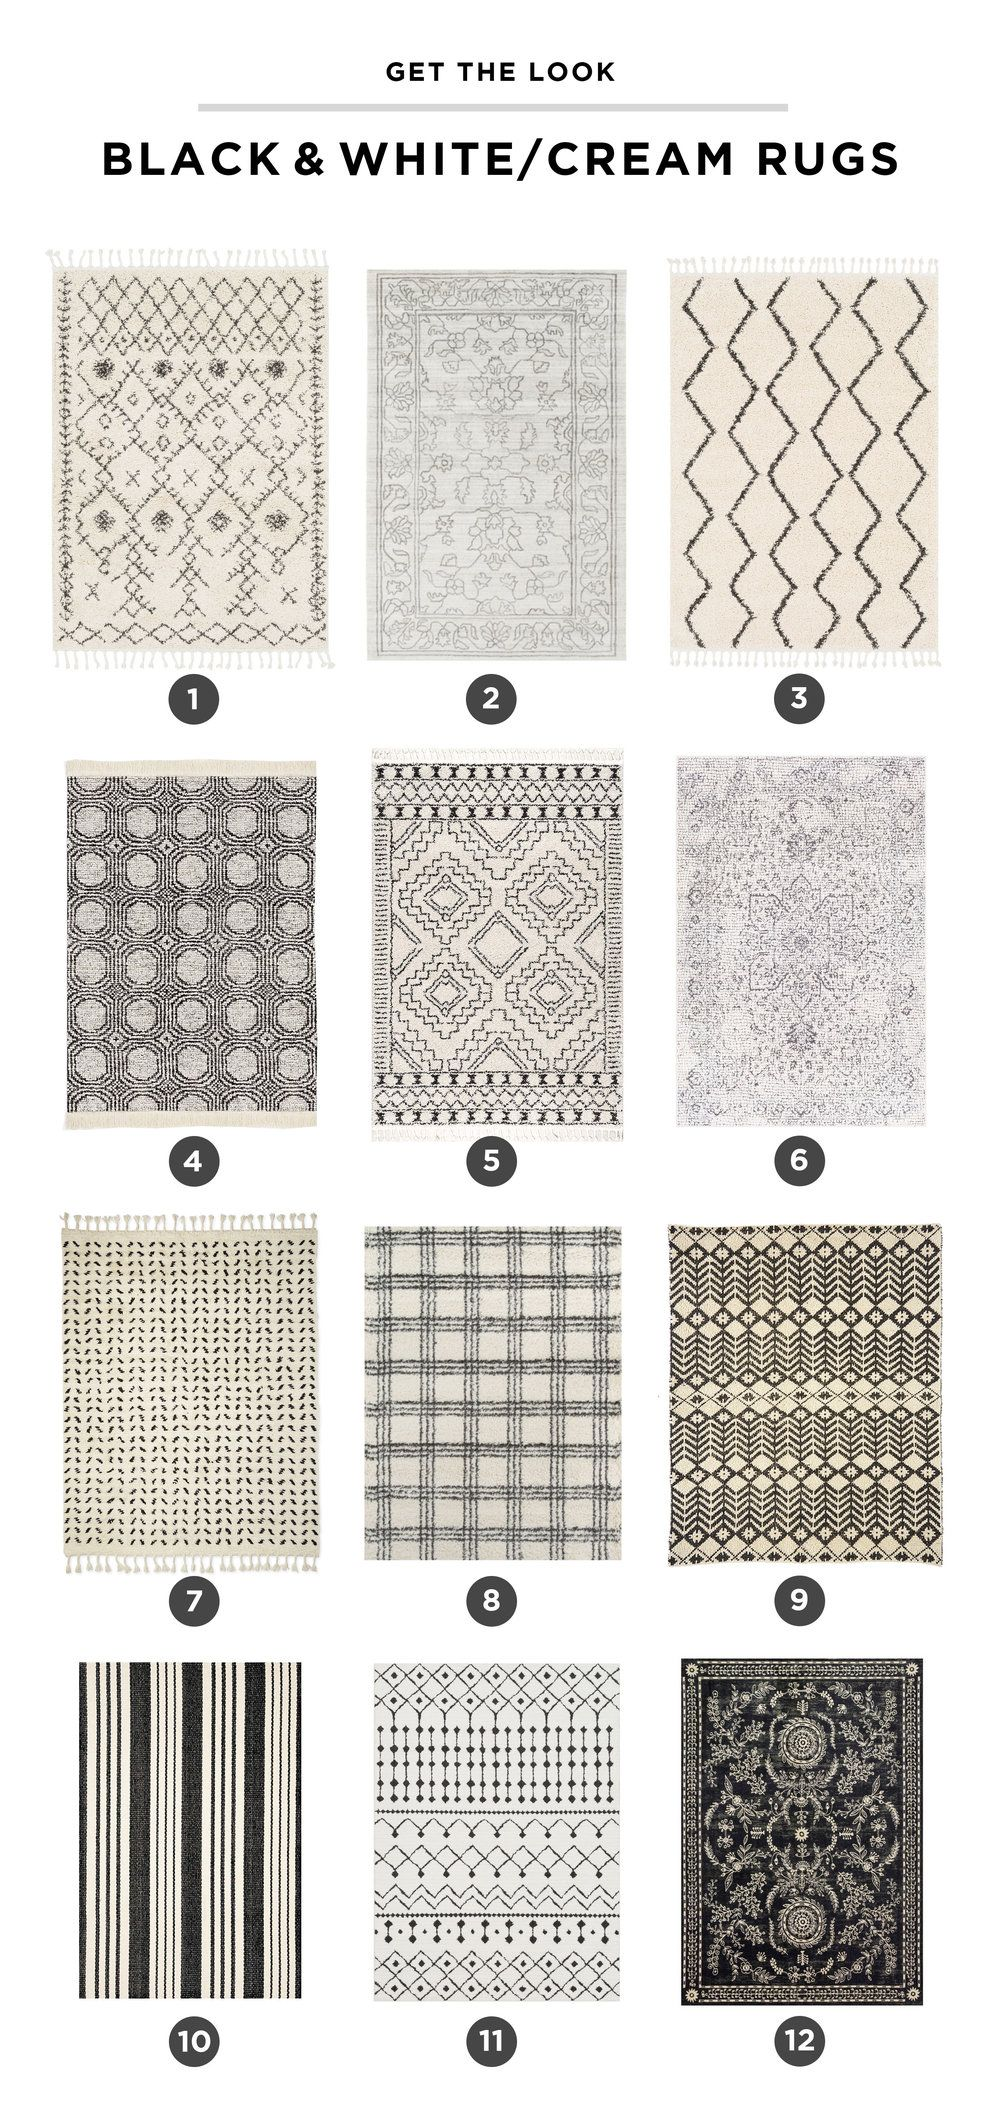 Neutral Rug Round-Up and Ideas: I love the versatility, warmth and texture a rug can bring to a living room. In this blog post, I'm sharing my favorite black and white or cream rugs that will work in any space in your home! #rugs #livingroom